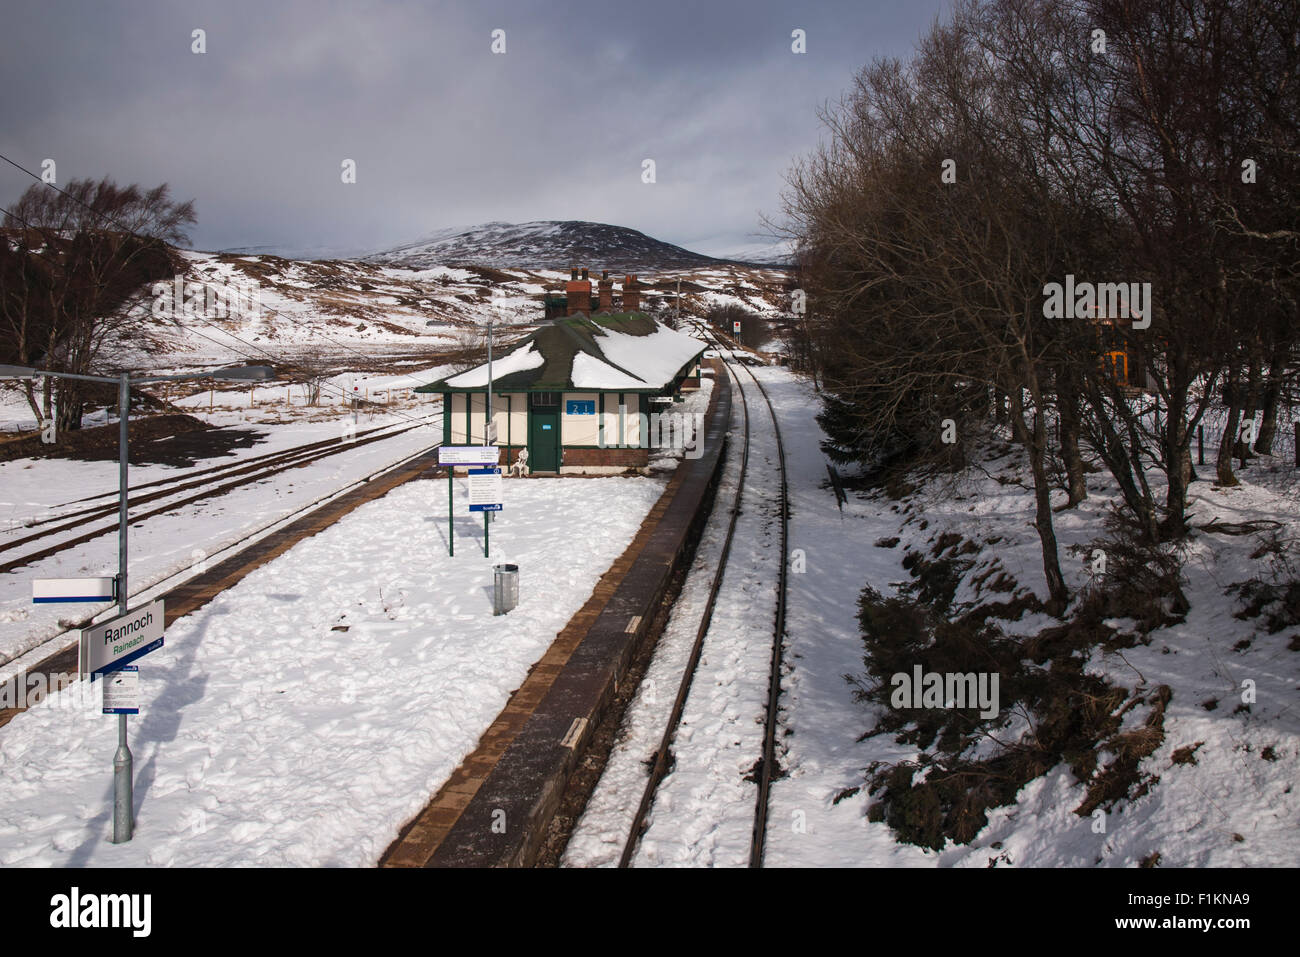 Rannoch Station In Winter Moor Perth And Kinross Scotland